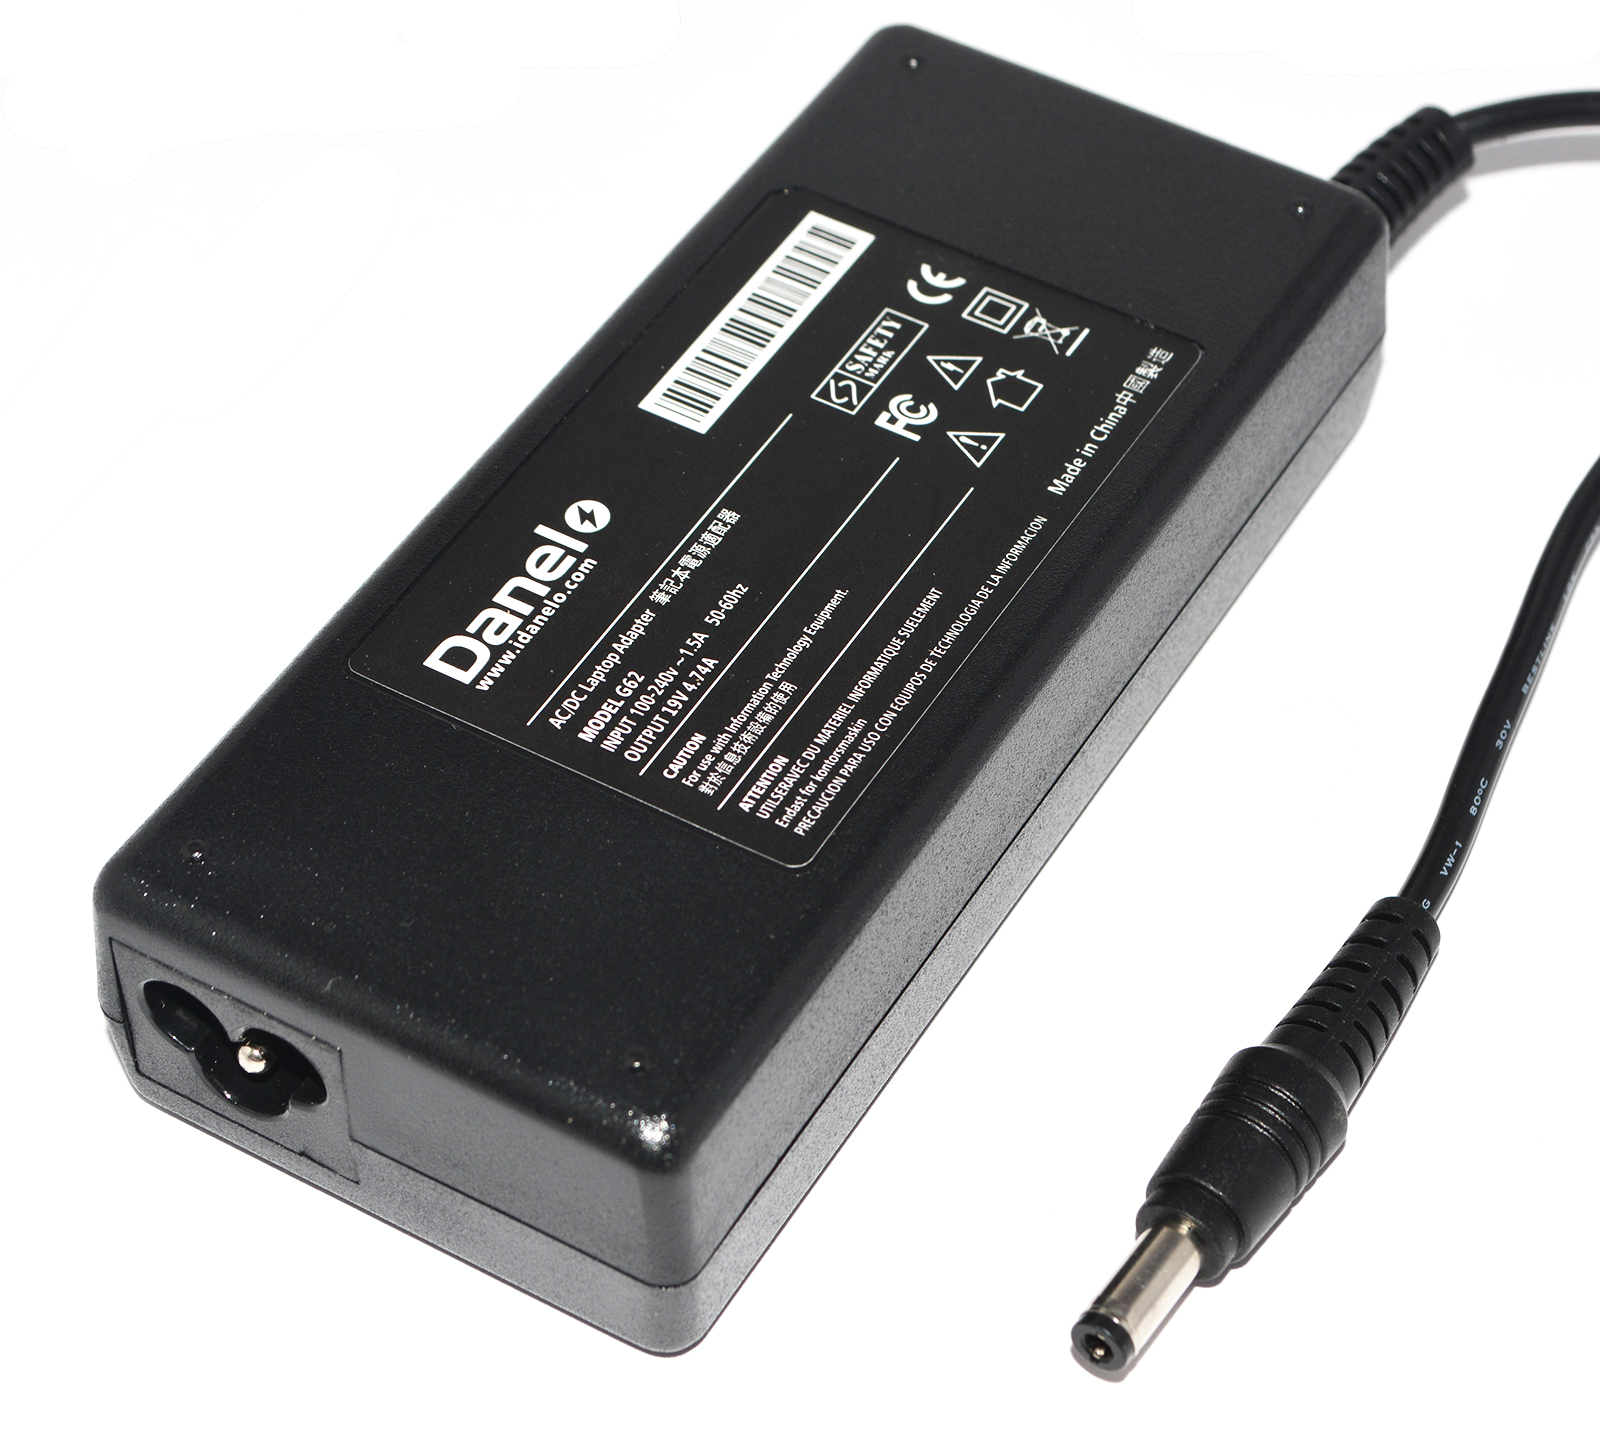 Fujitsu-Siemens Part Number WTS:25.10204.001 Laptop Charger